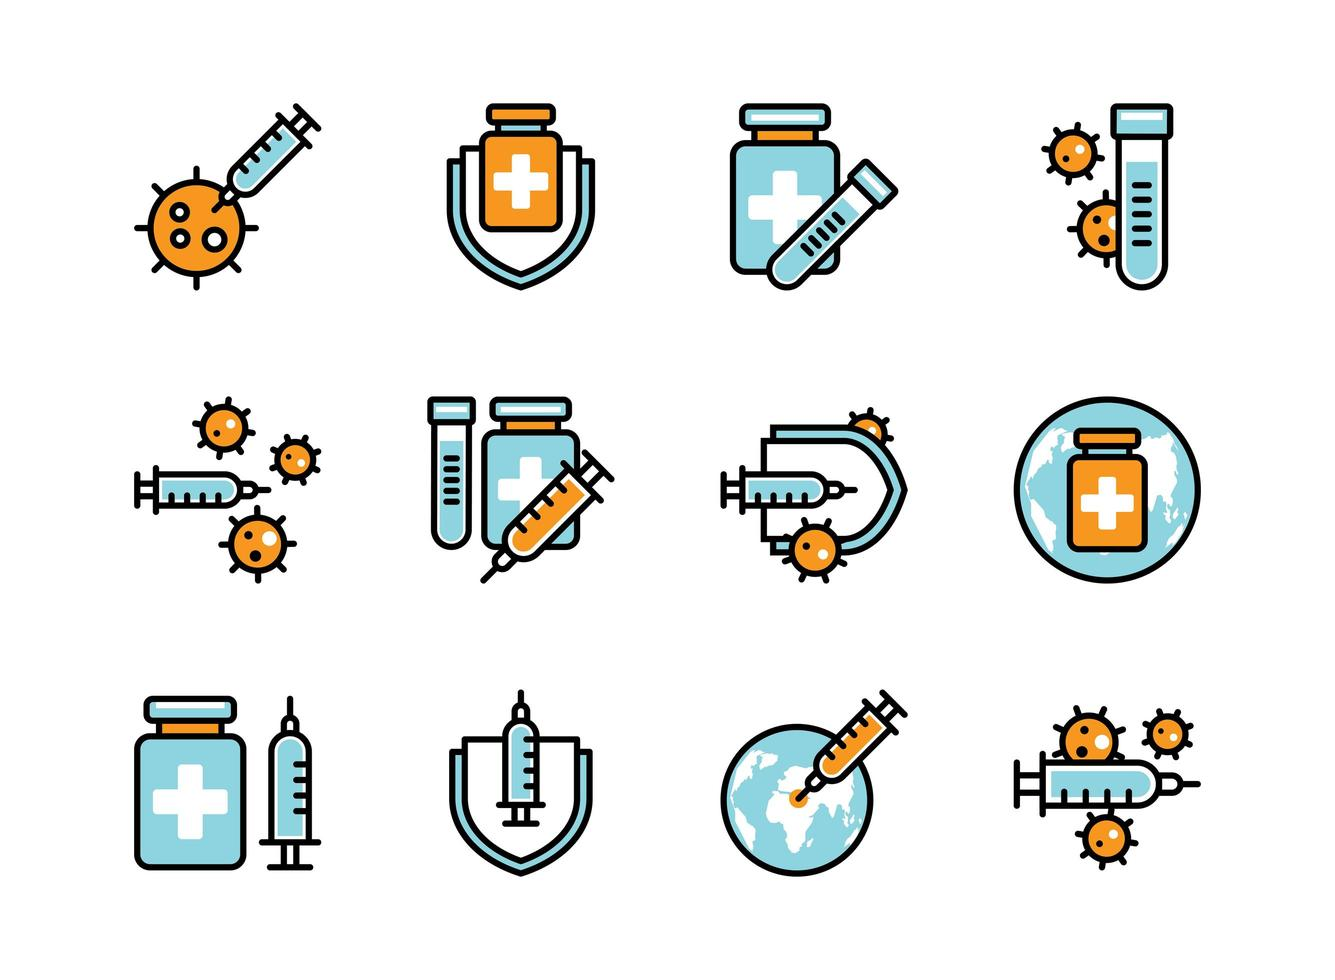 Covid-19 vaccine icon set colorline style. Sign and symbol for website, print, sticker, banner, poster. vector